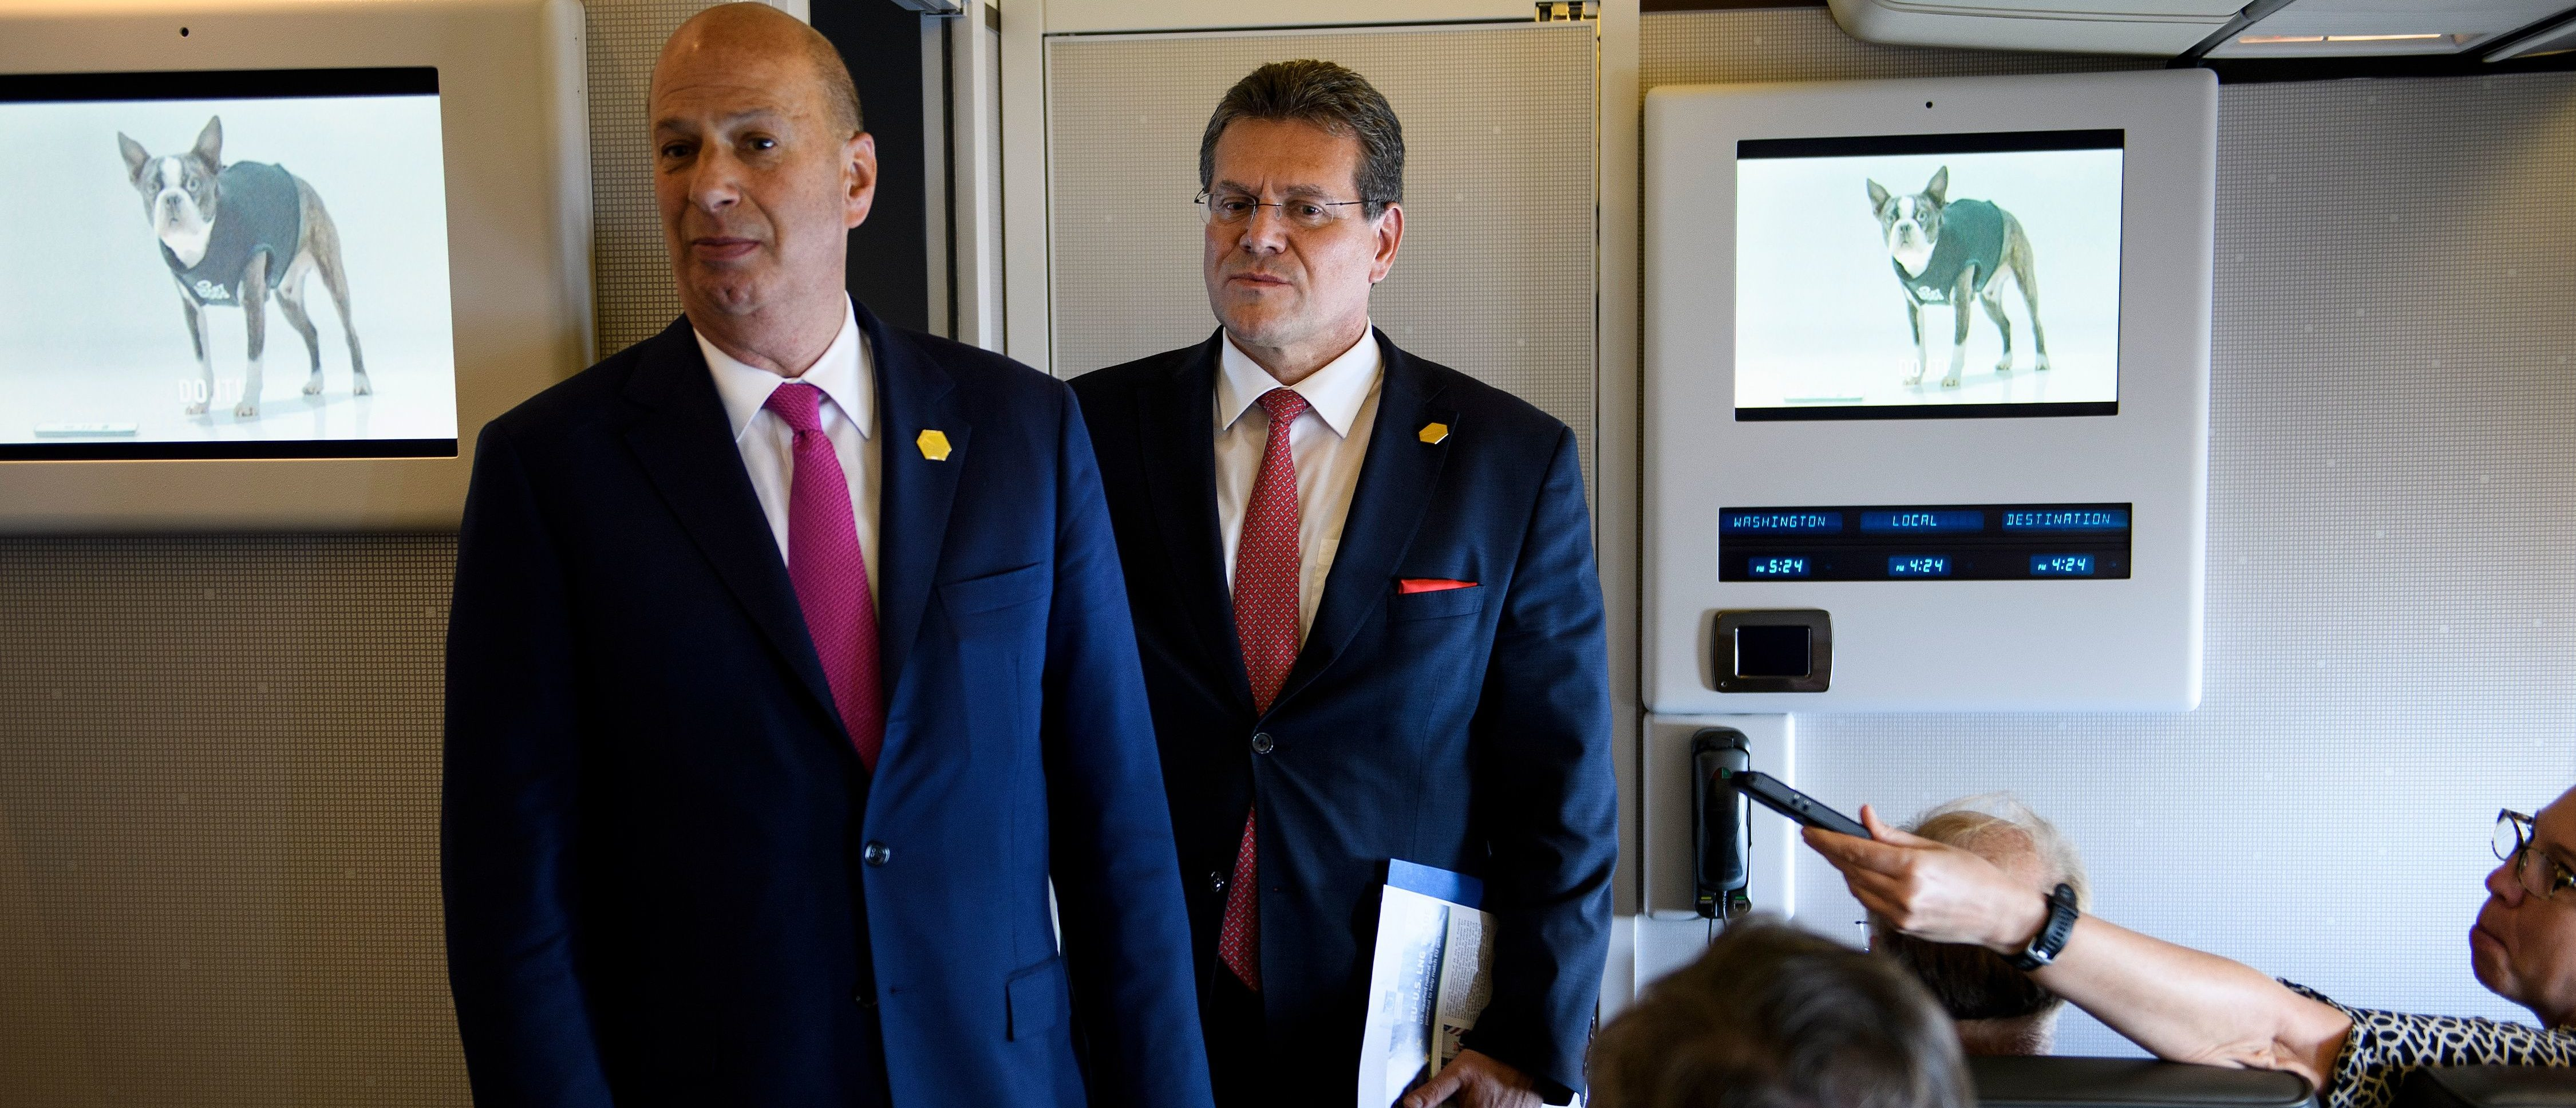 U.S. Ambassador to the EU Gordon Sondland (L) and European Commission Vice President Maros Sefcovic talk with to reporters aboard Air Force One May 14, 2019, in Louisiana. (BRENDAN SMIALOWSKI/AFP/Getty Images)